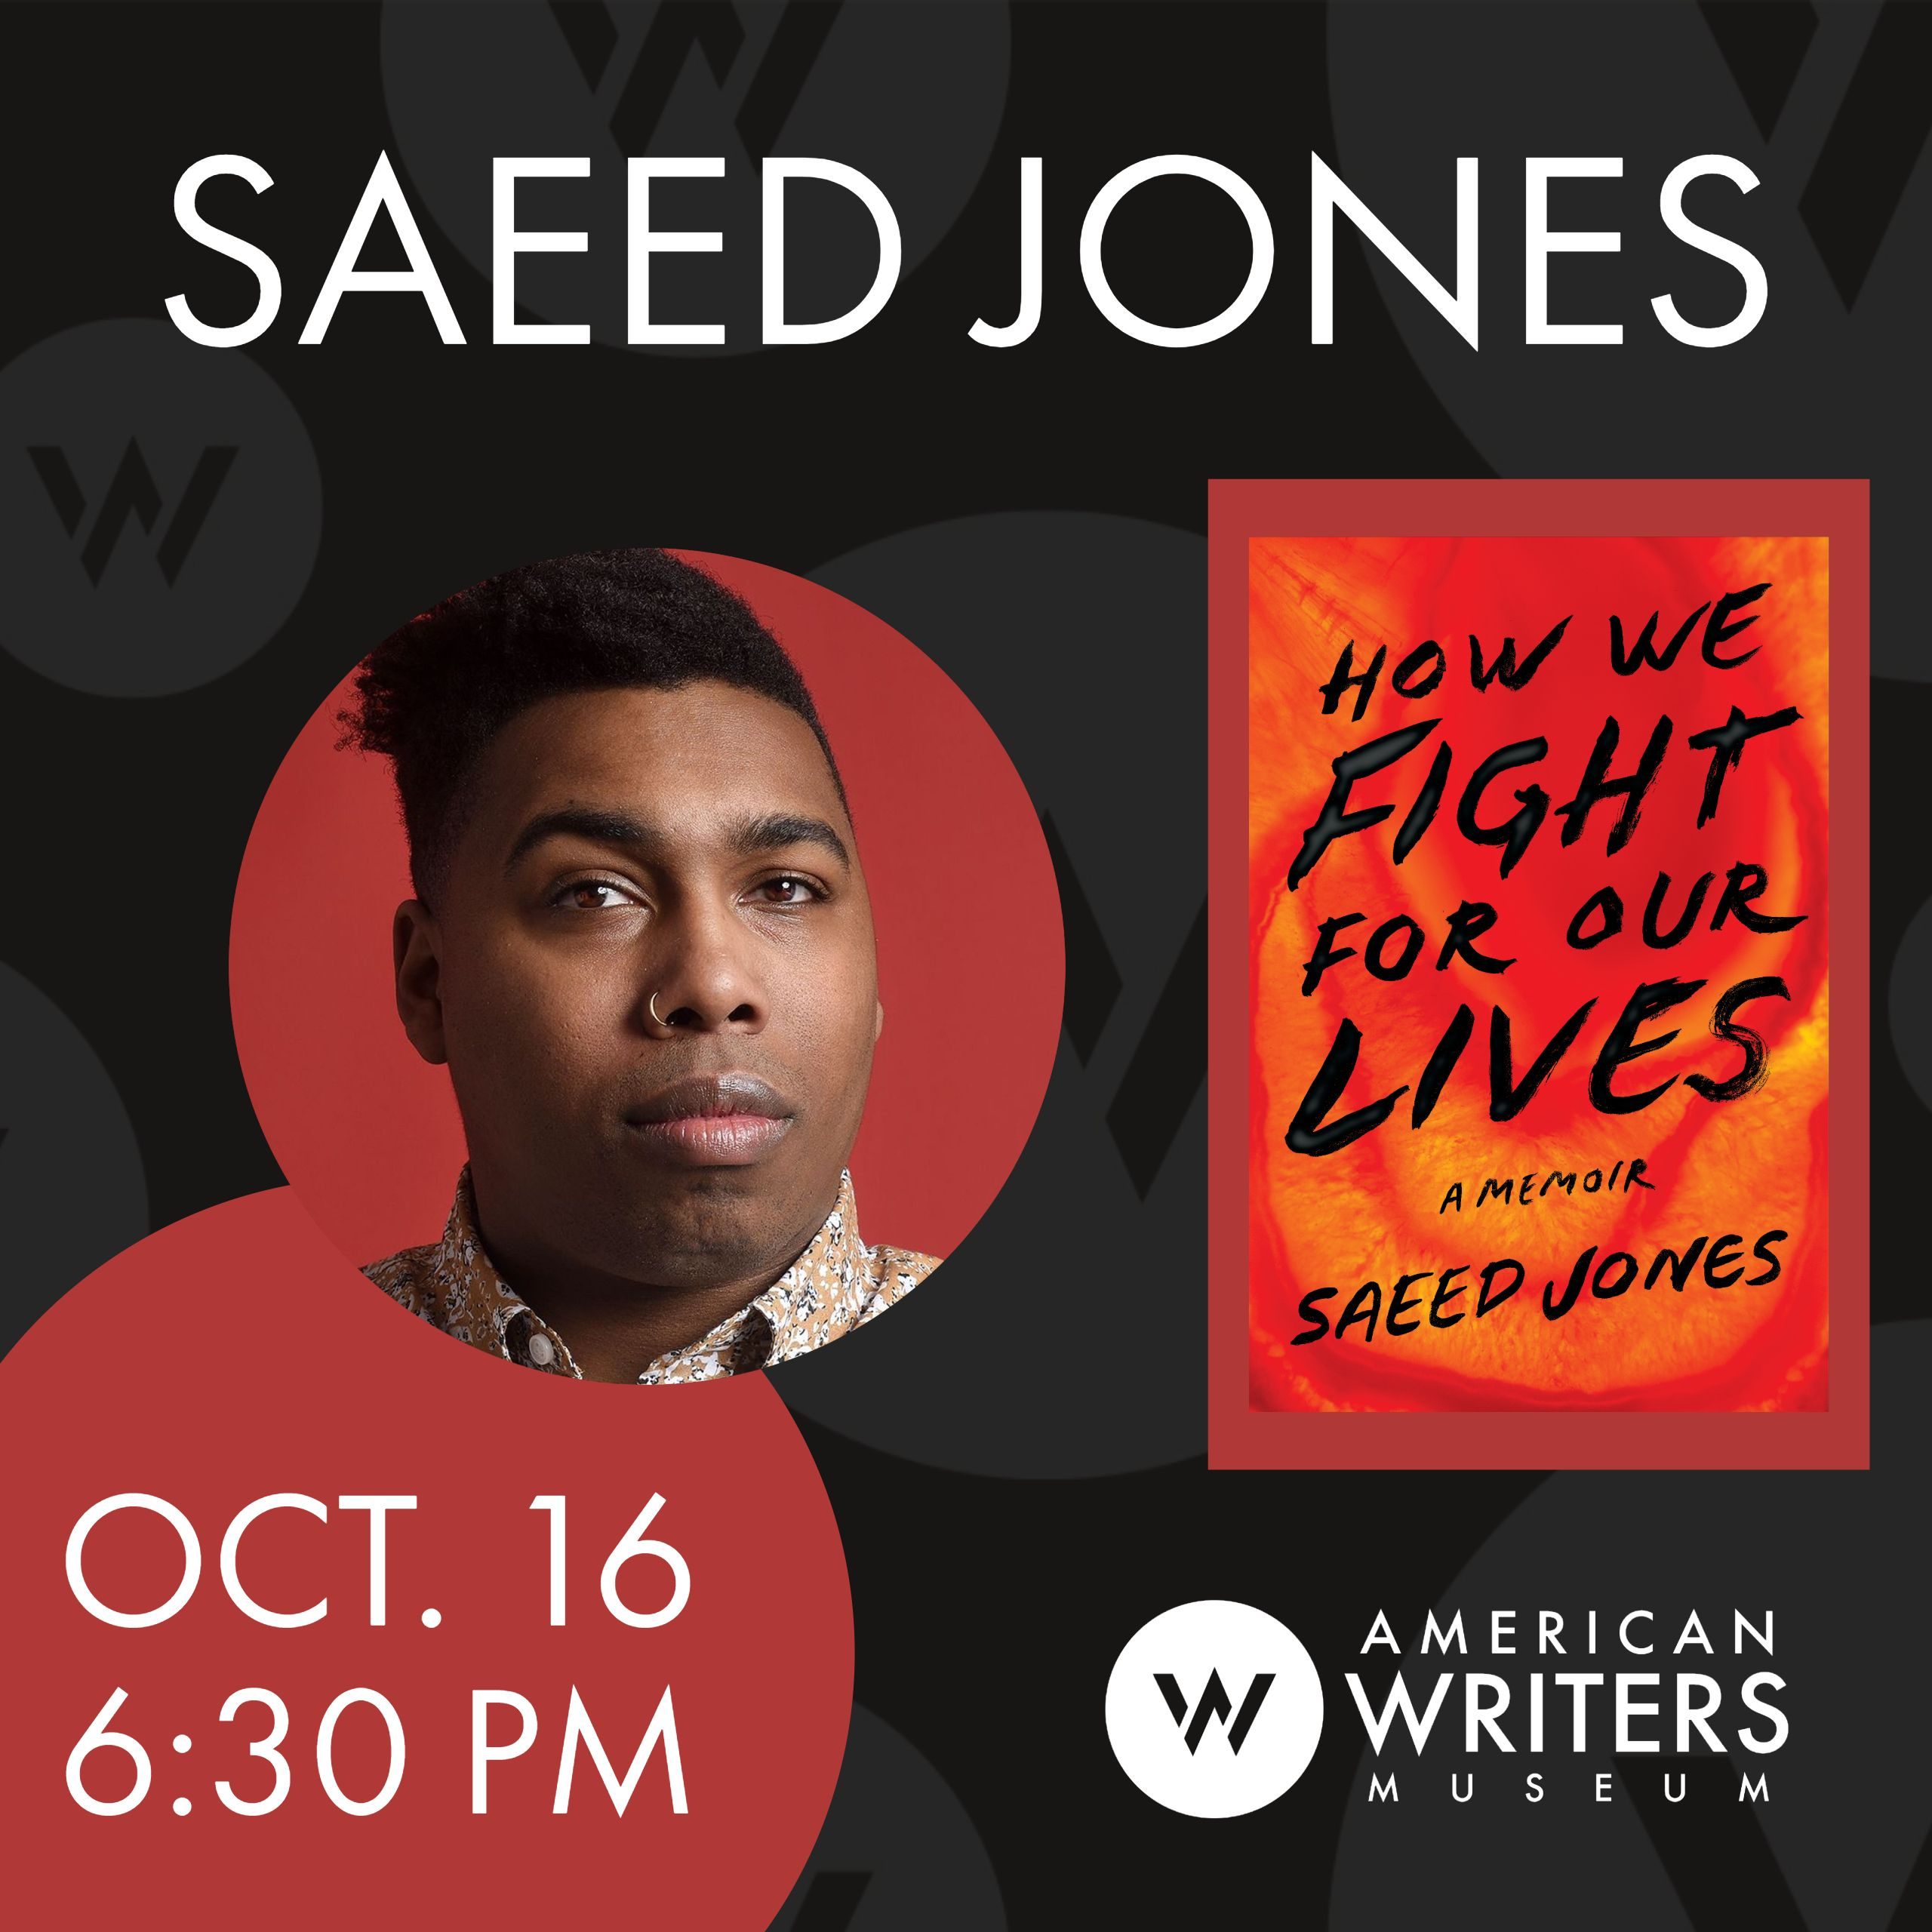 Saeed Jones at the American Writers Museum in Chicago on October 16 at 6:30 pm